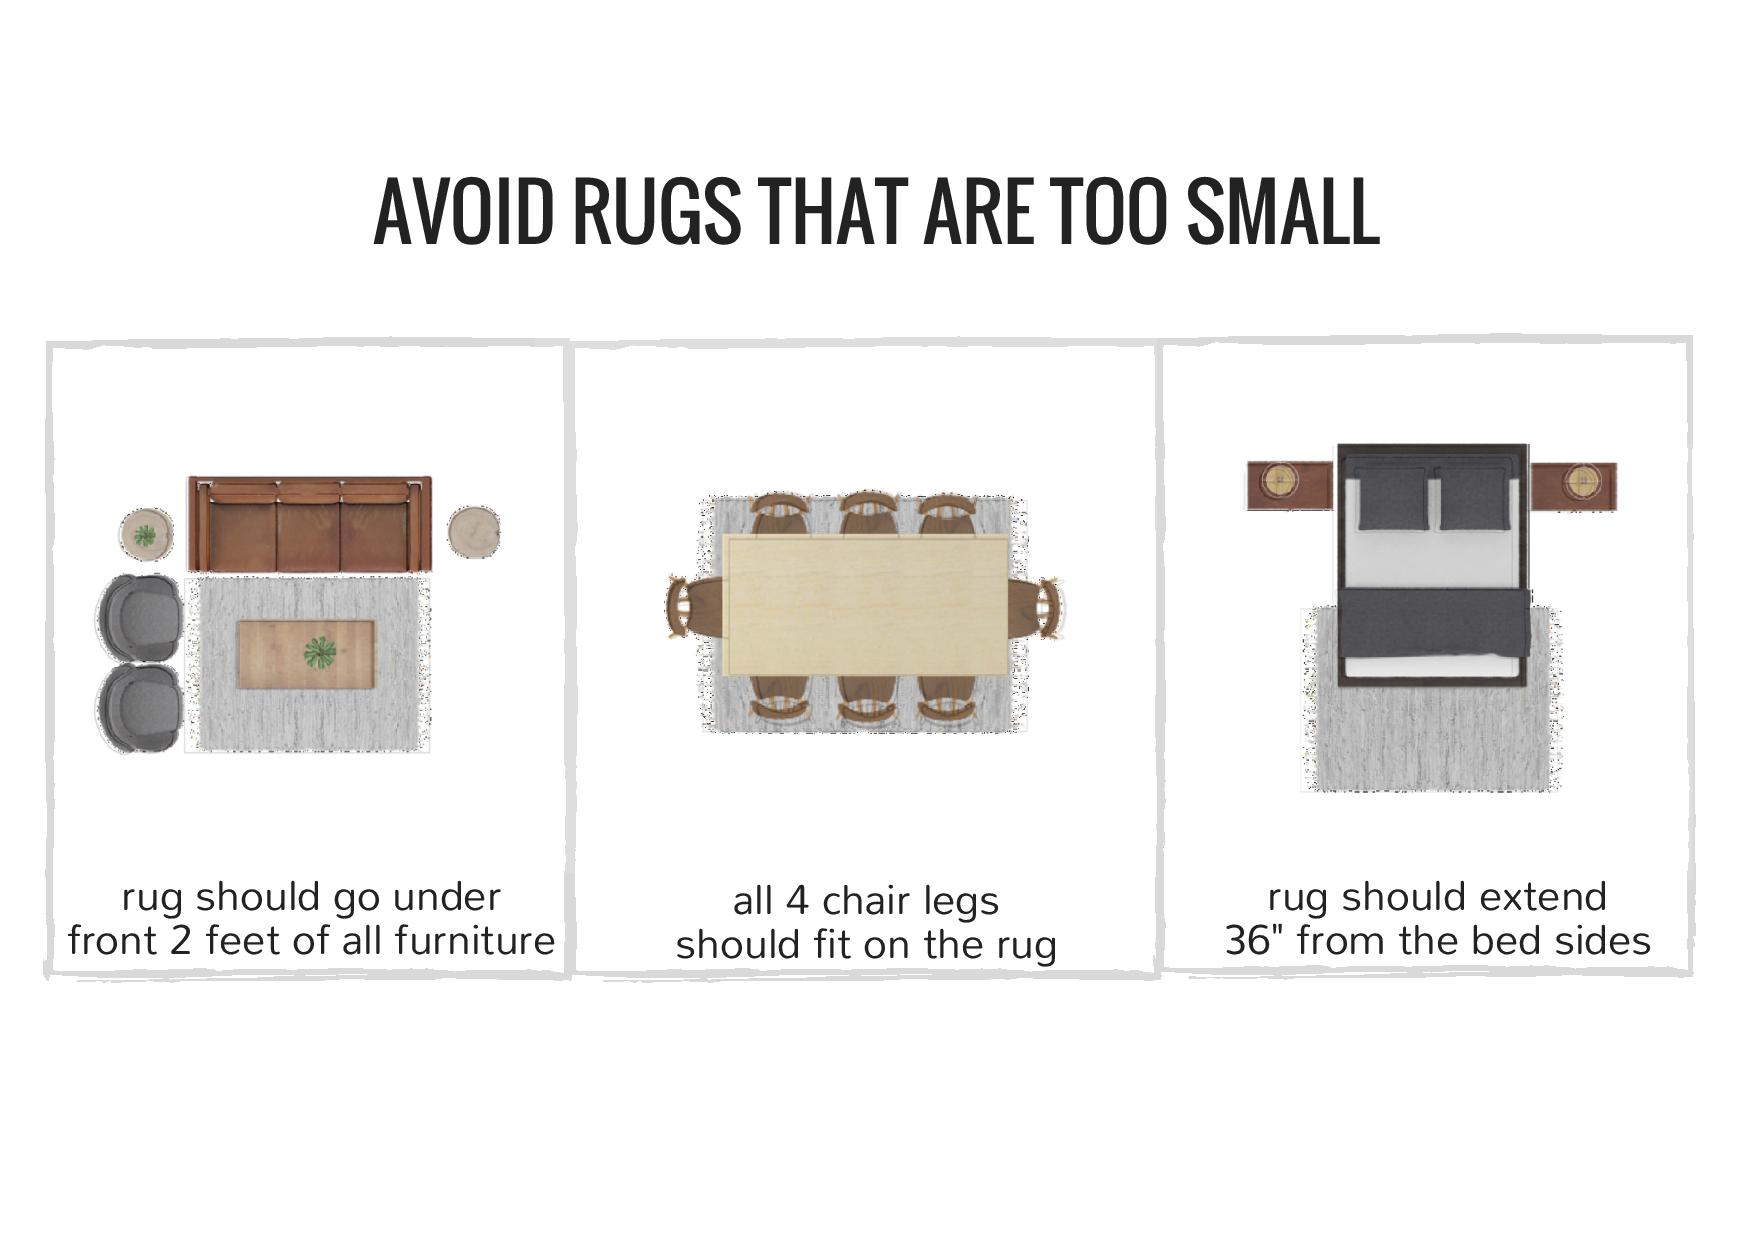 rug sizing and placement guide - common mistakes people make with rug size